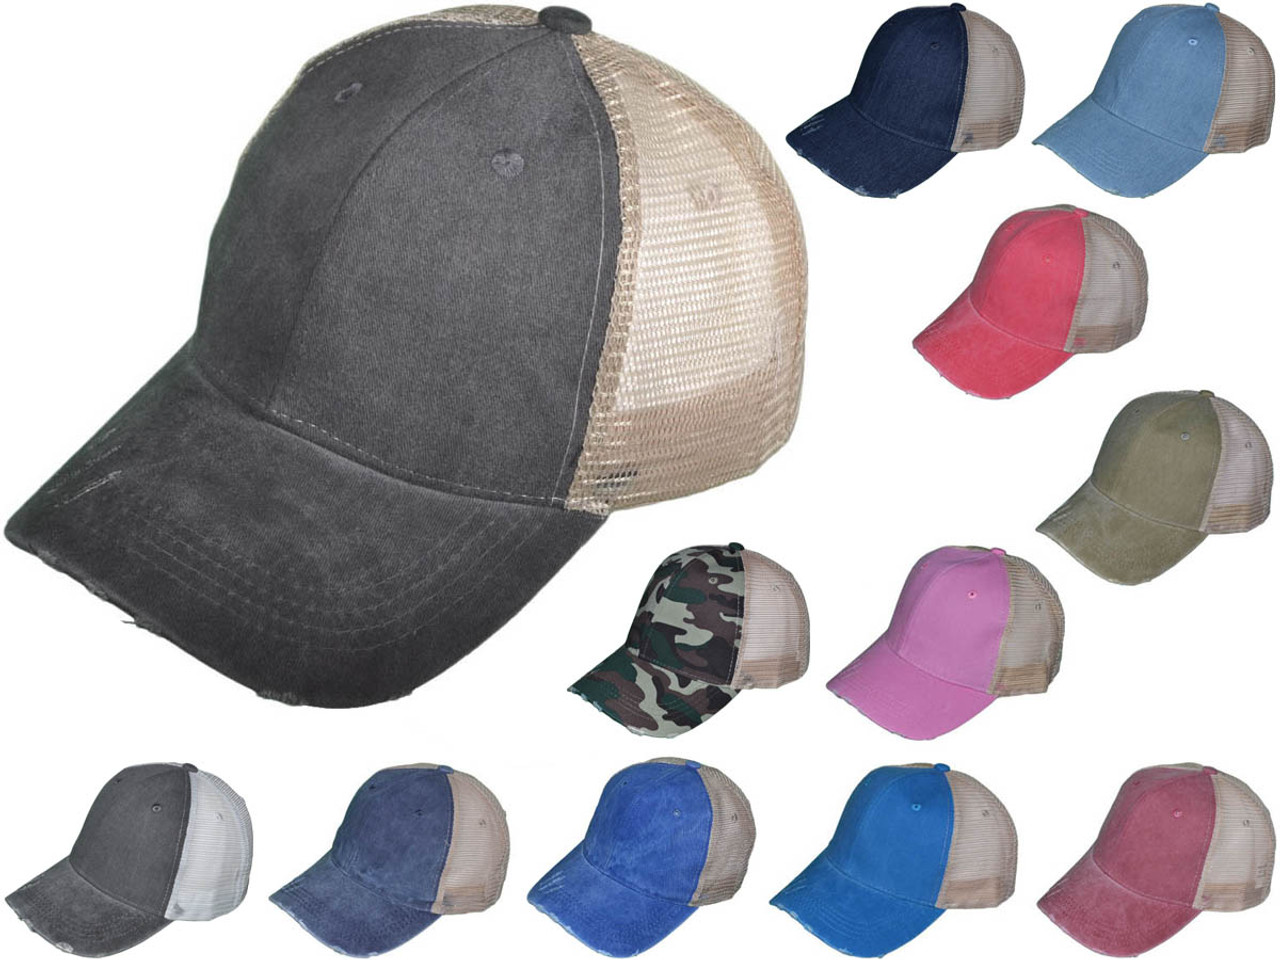 df57f7f0 Wholesale BK Caps Low Profile Structured Pigment-Dyed Cotton ...